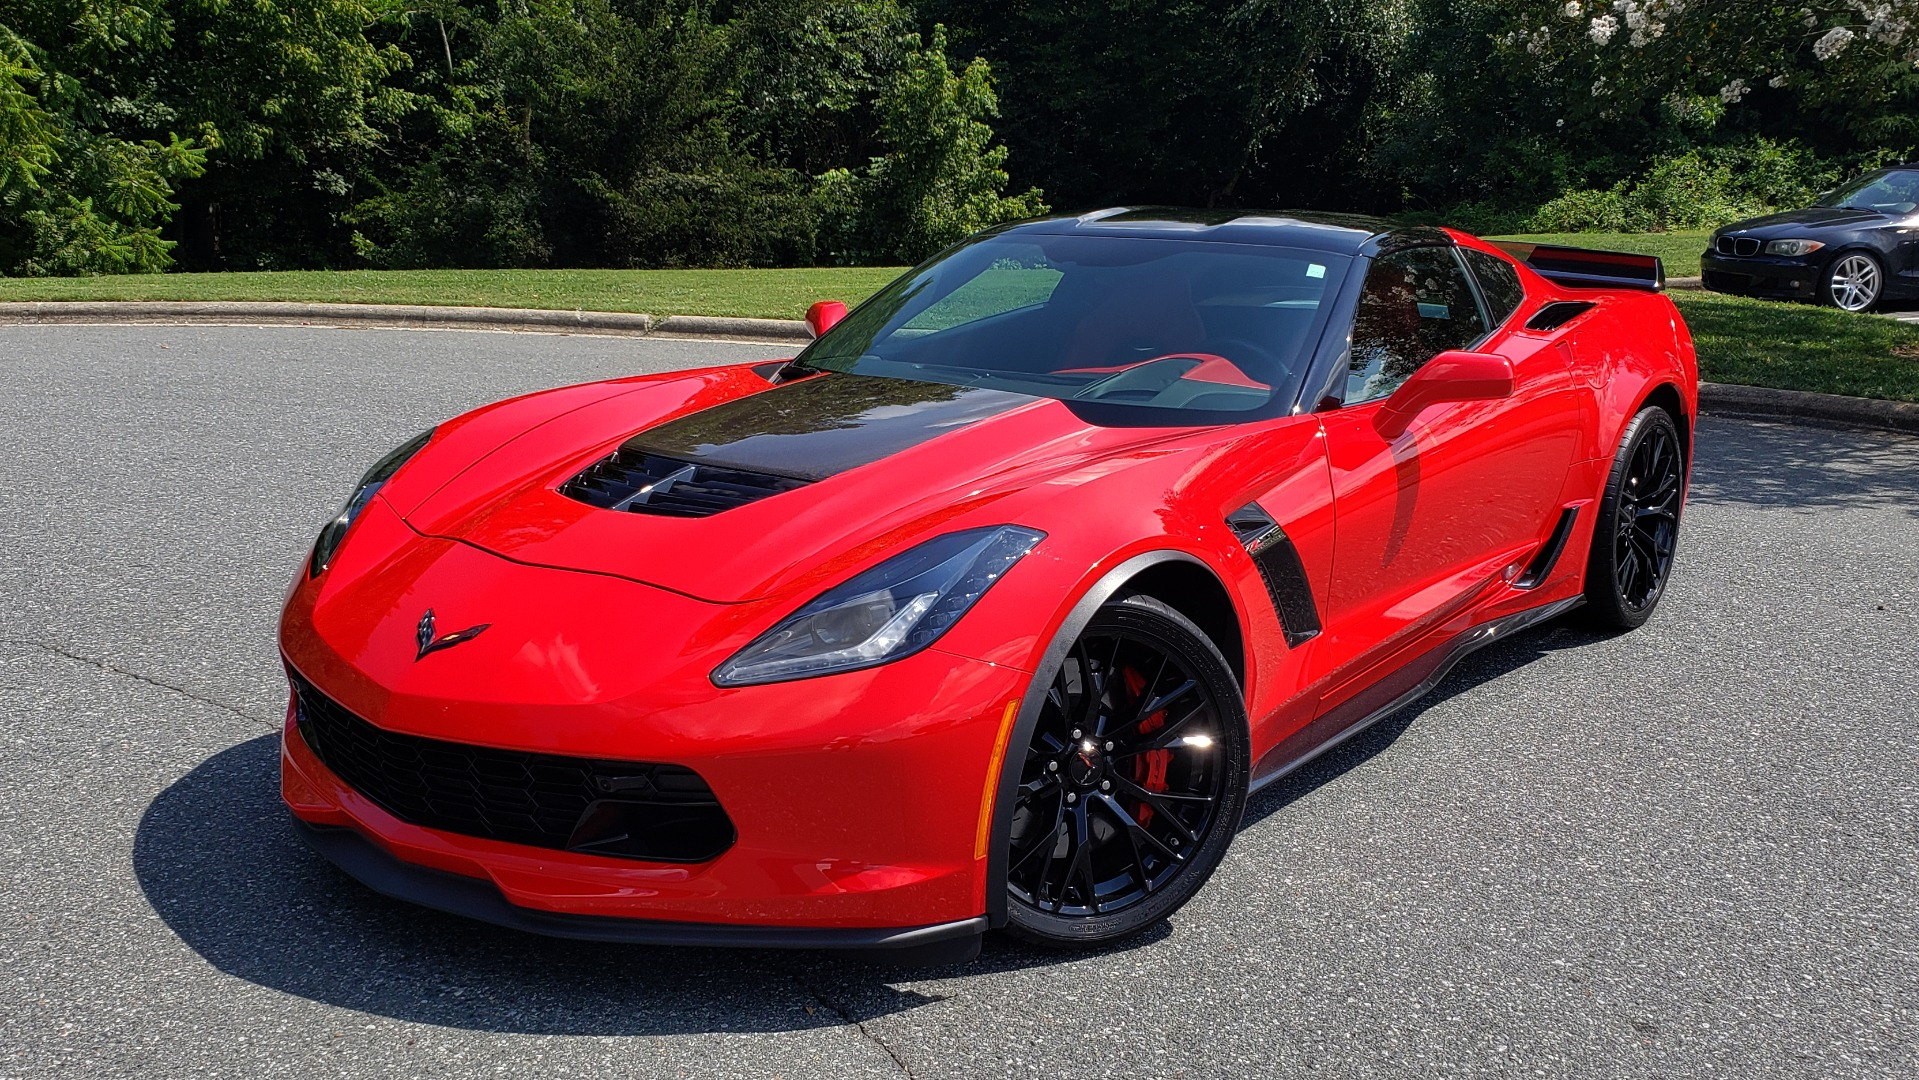 Used 2016 Chevrolet CORVETTE Z06 3LZ / 6.2L SUPERCHARGED 650HP / NAV / BOSE / REARVIEW for sale Sold at Formula Imports in Charlotte NC 28227 1